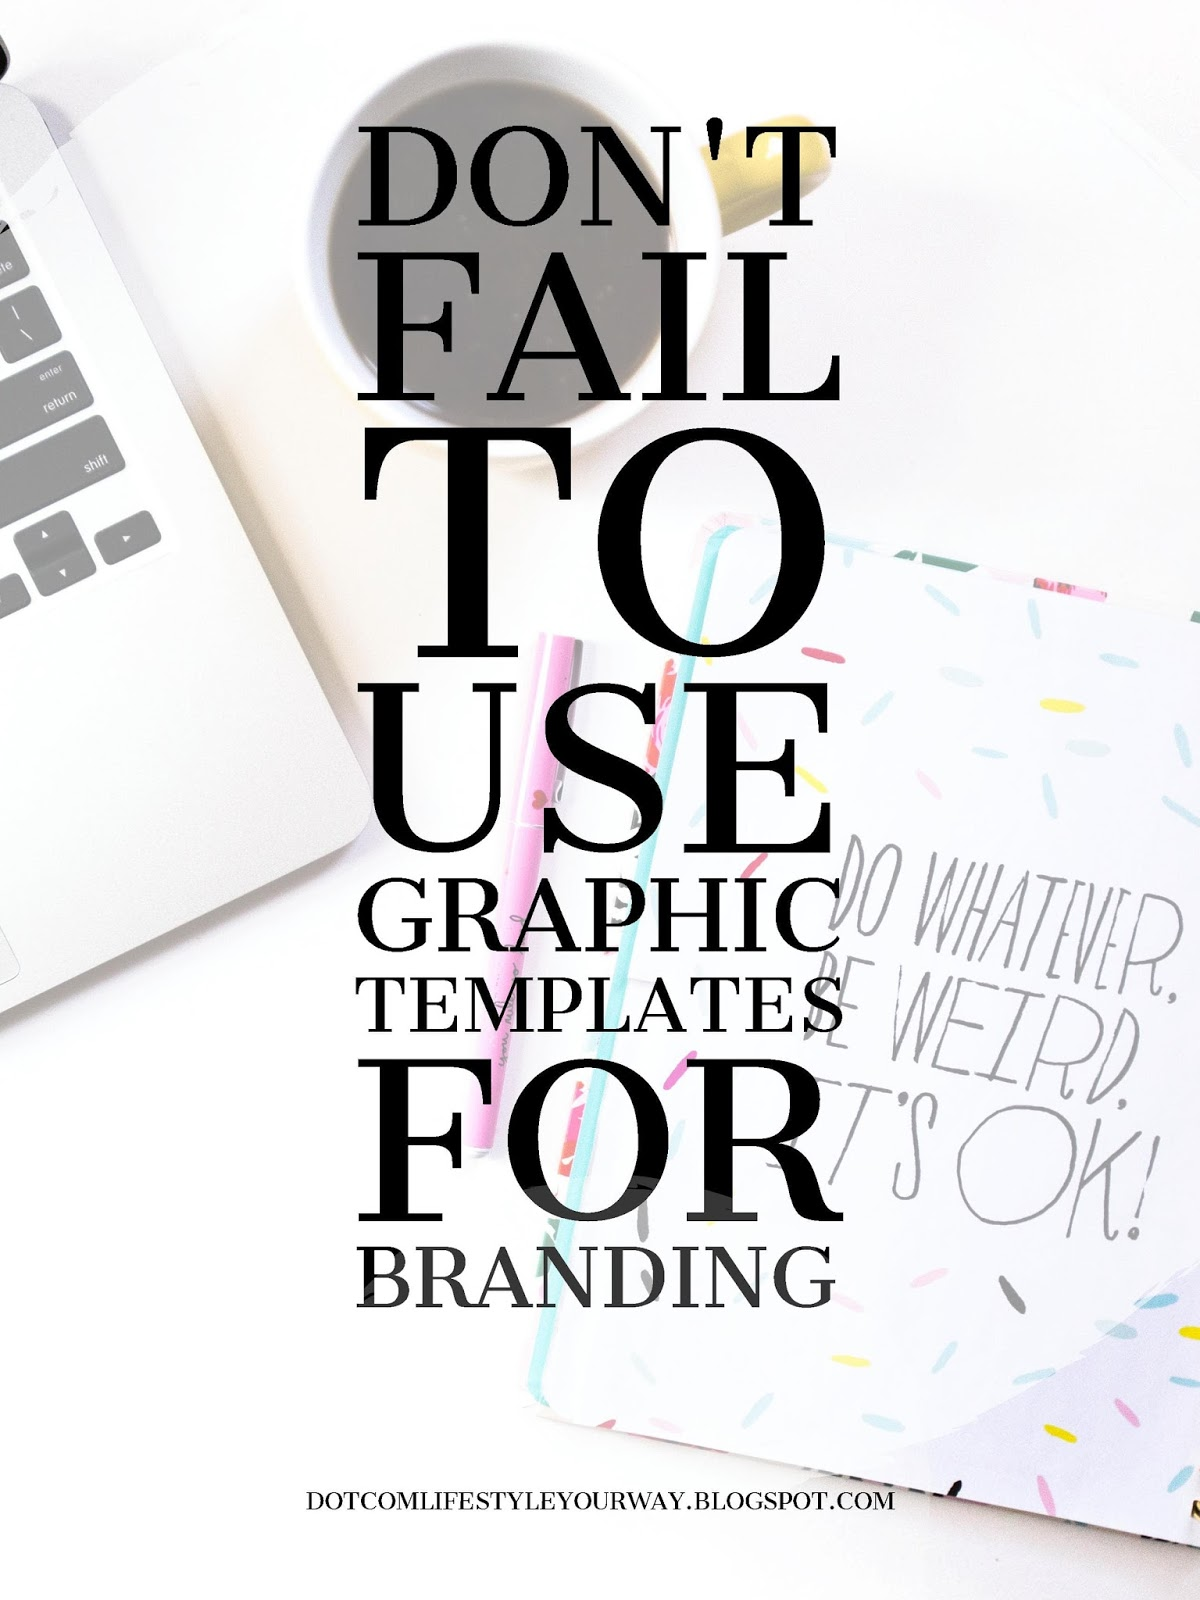 Branding is the process of creating cohesive elements with the aim to set one seller's products or services apart from others, making them distinguishable for customers